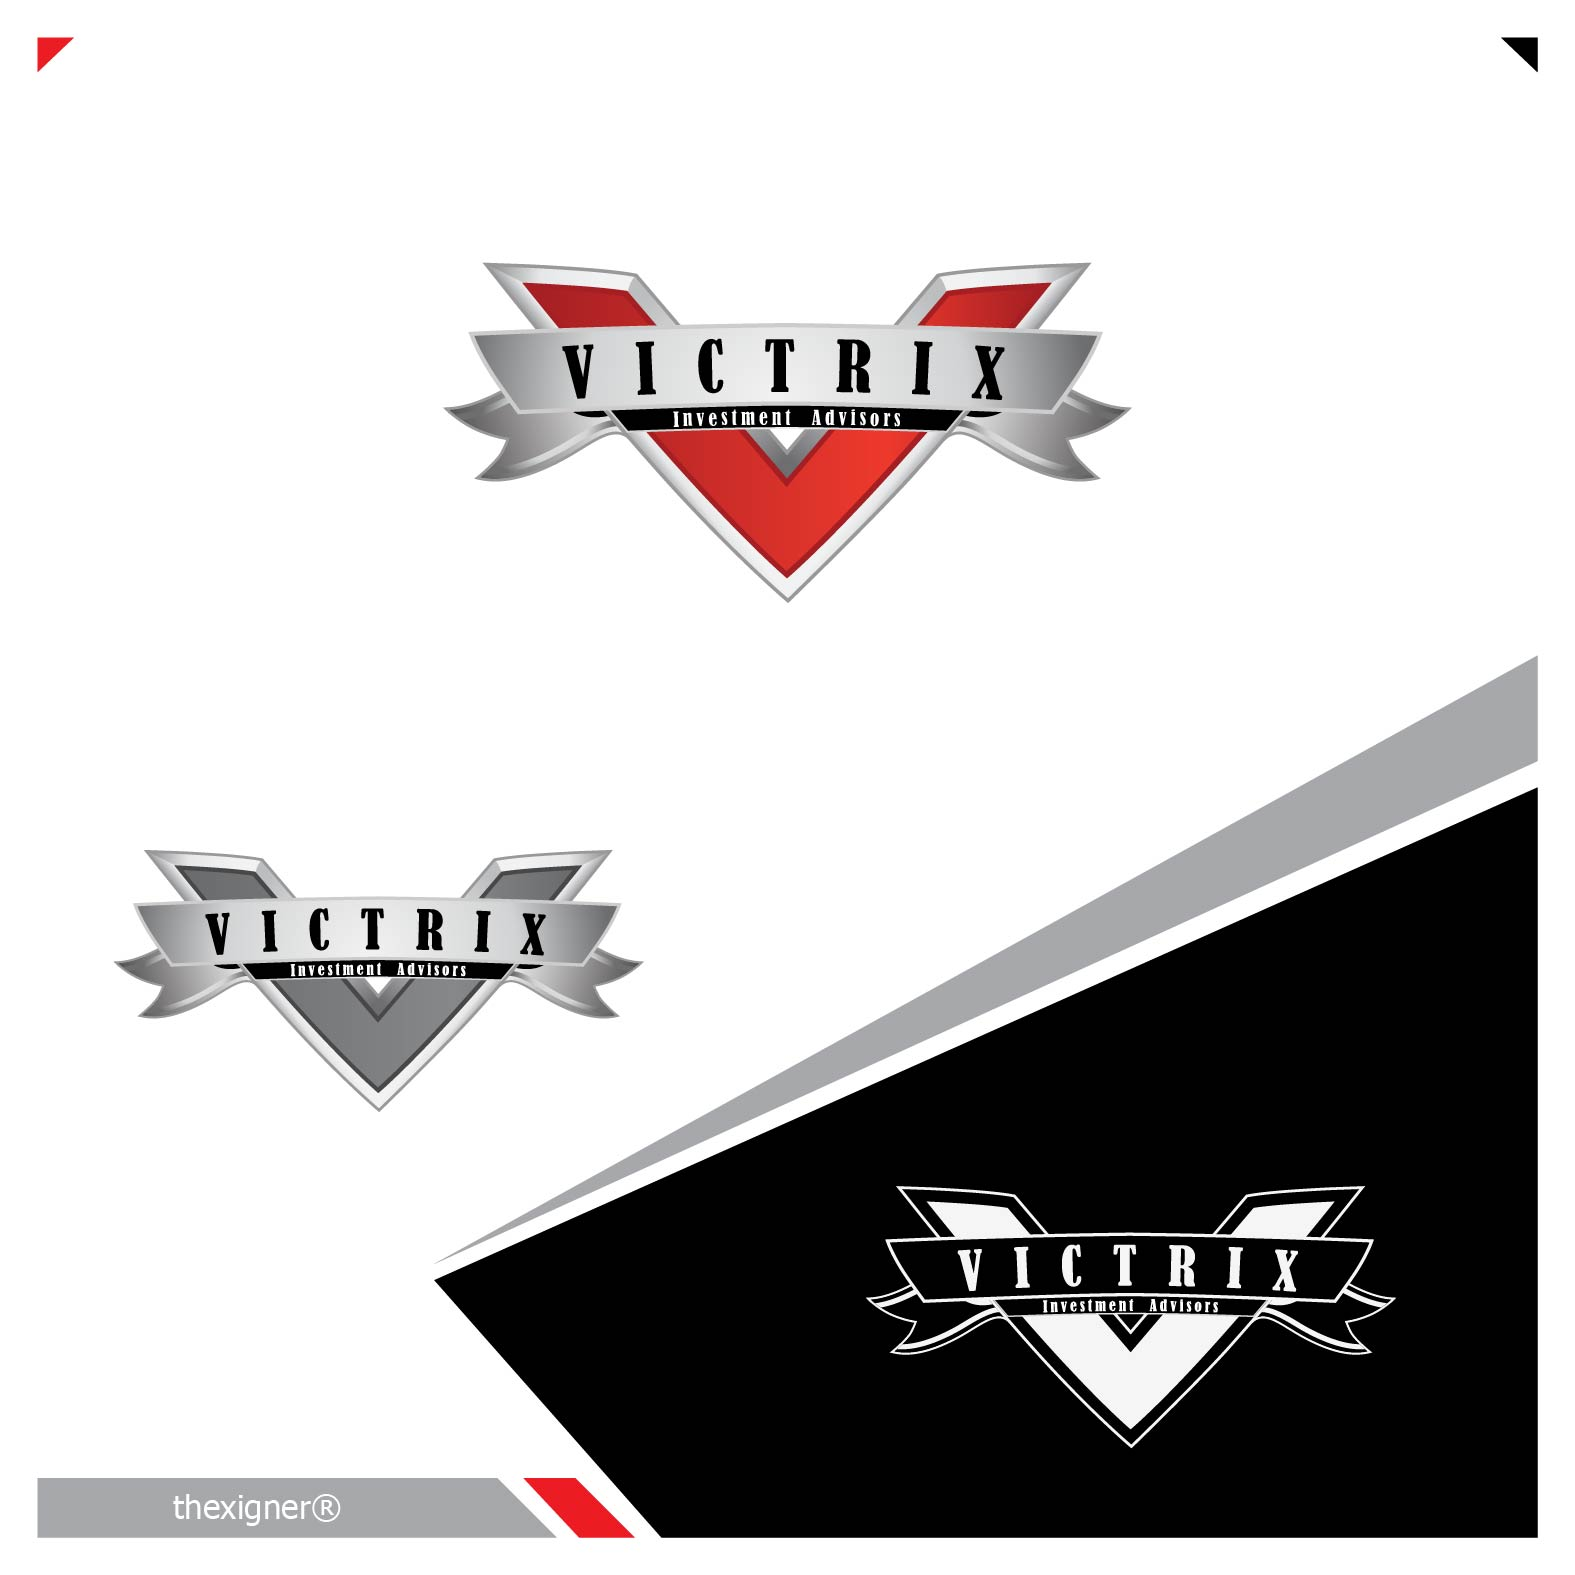 Logo Design by lagalag - Entry No. 3 in the Logo Design Contest Inspiring Logo Design for Victrix Investment Advisors.